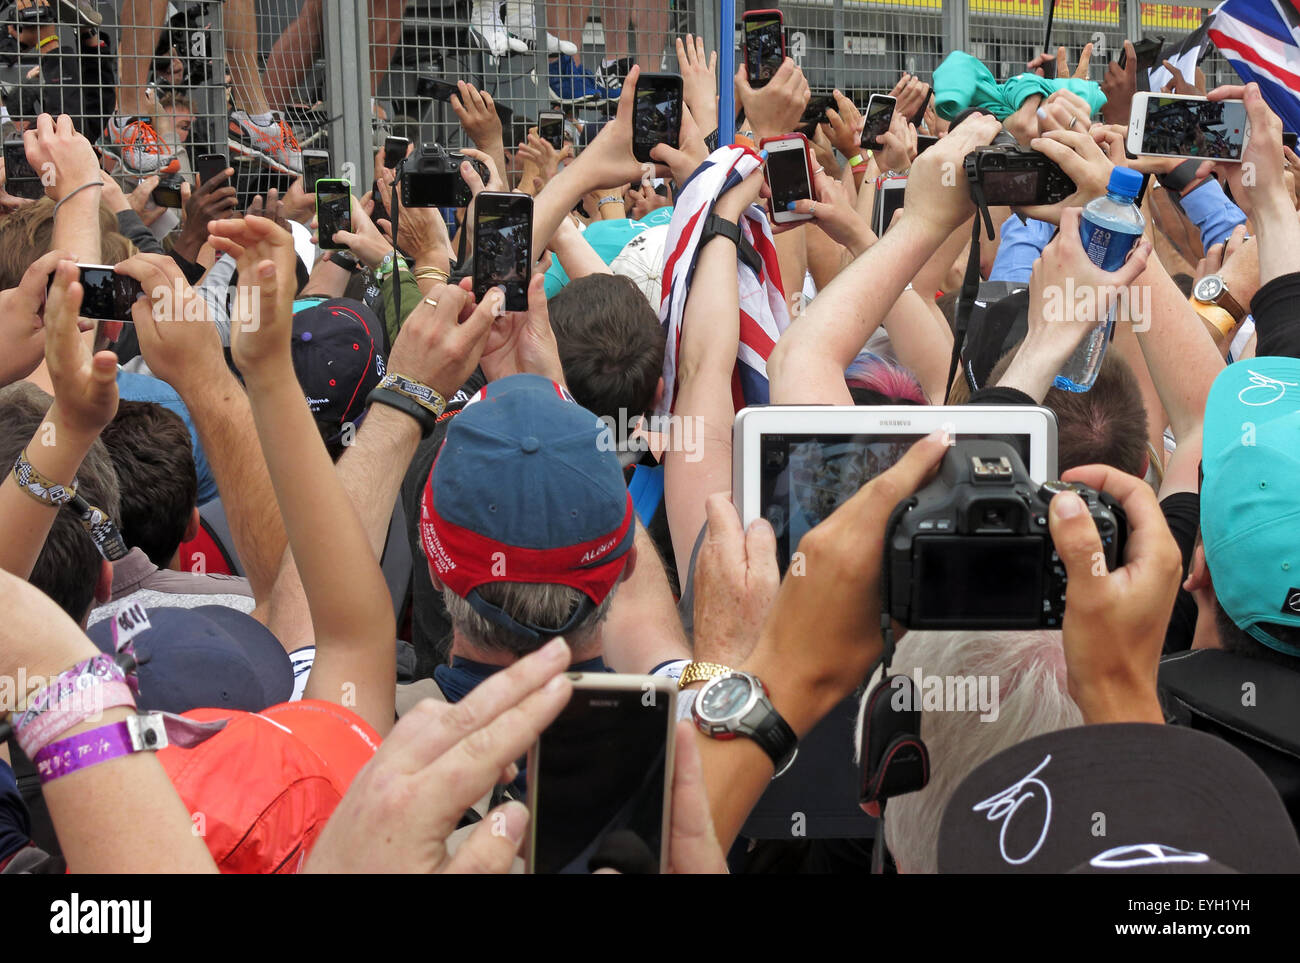 Crowd of people all with cameras,phones & tablets at an event Stock Photo